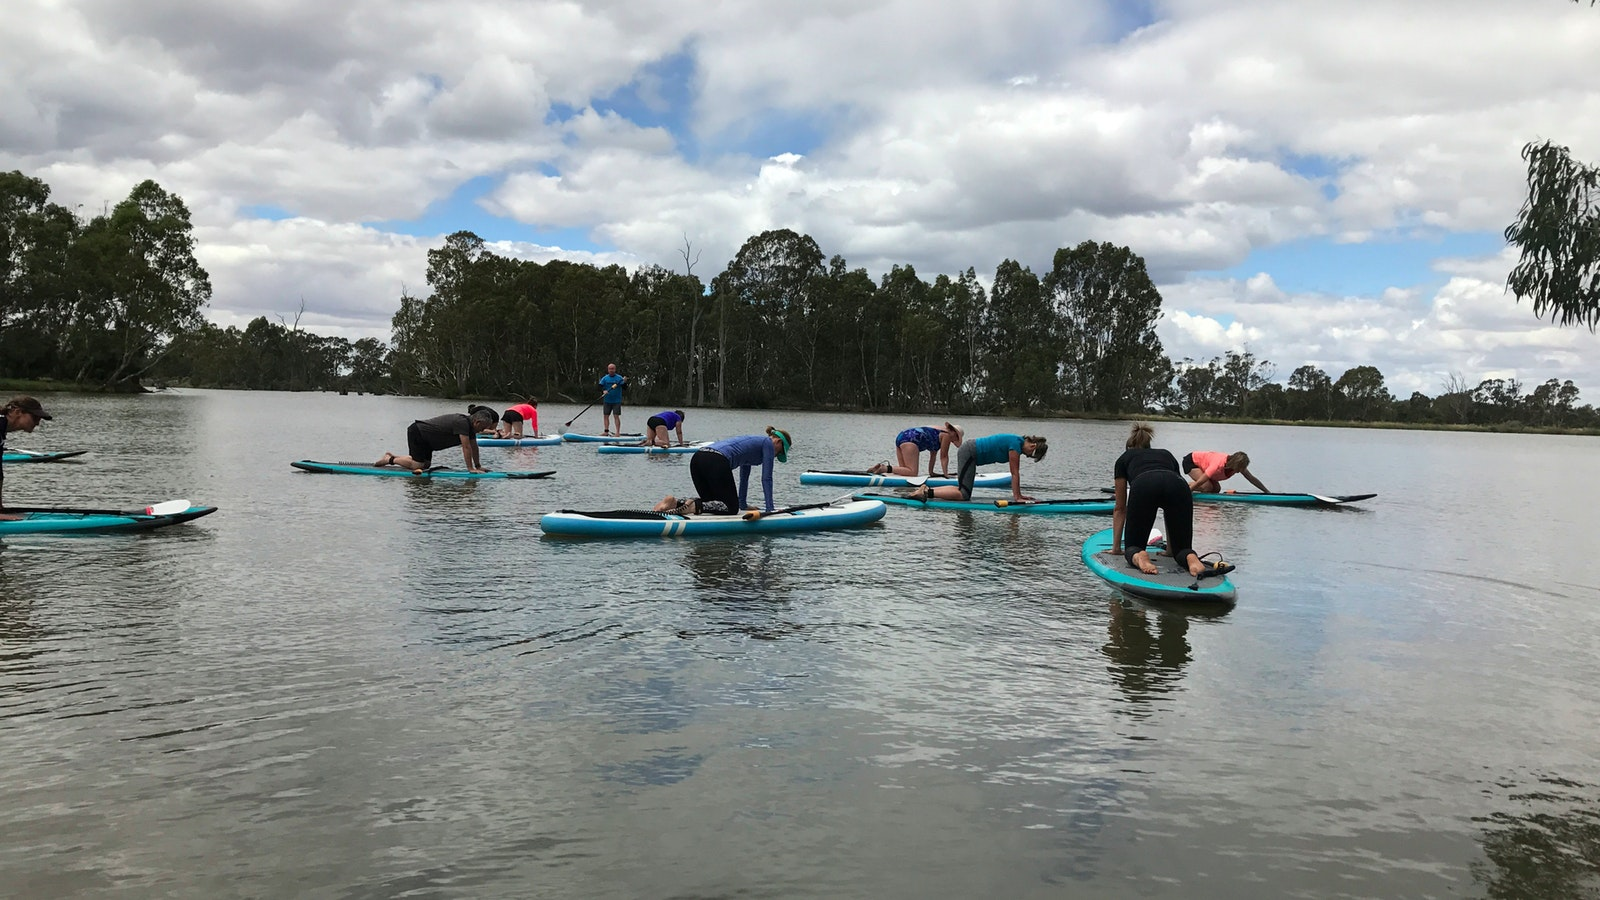 Large group of paddleboarders on the water doing cat and cow yoga move.